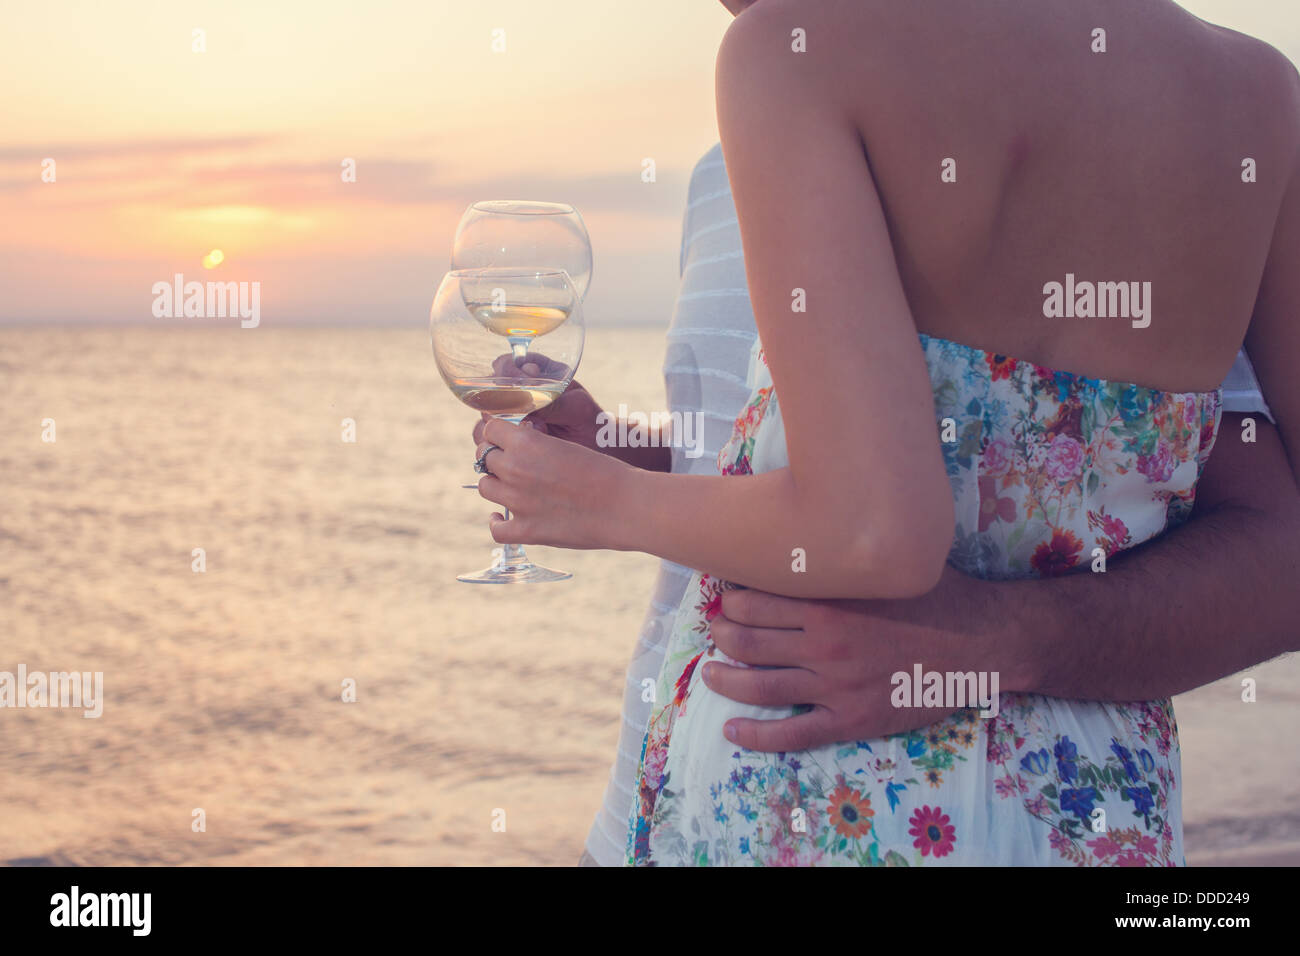 Closeup of glasses with white wine during sunset on the beach. Couple on picnic. - Stock Image